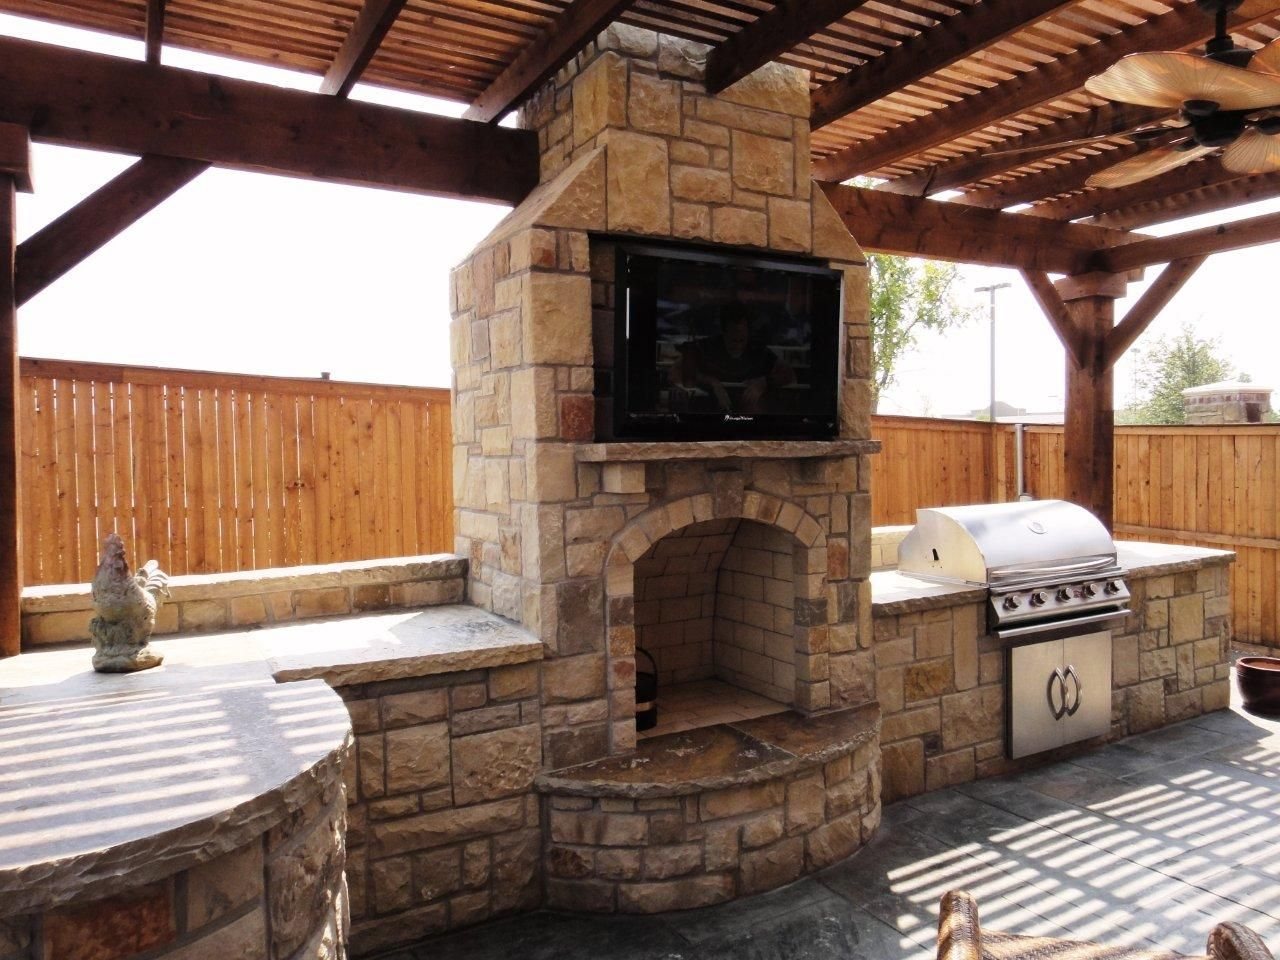 outdoor kitchen supplies stone oven | best kitchen design ideas